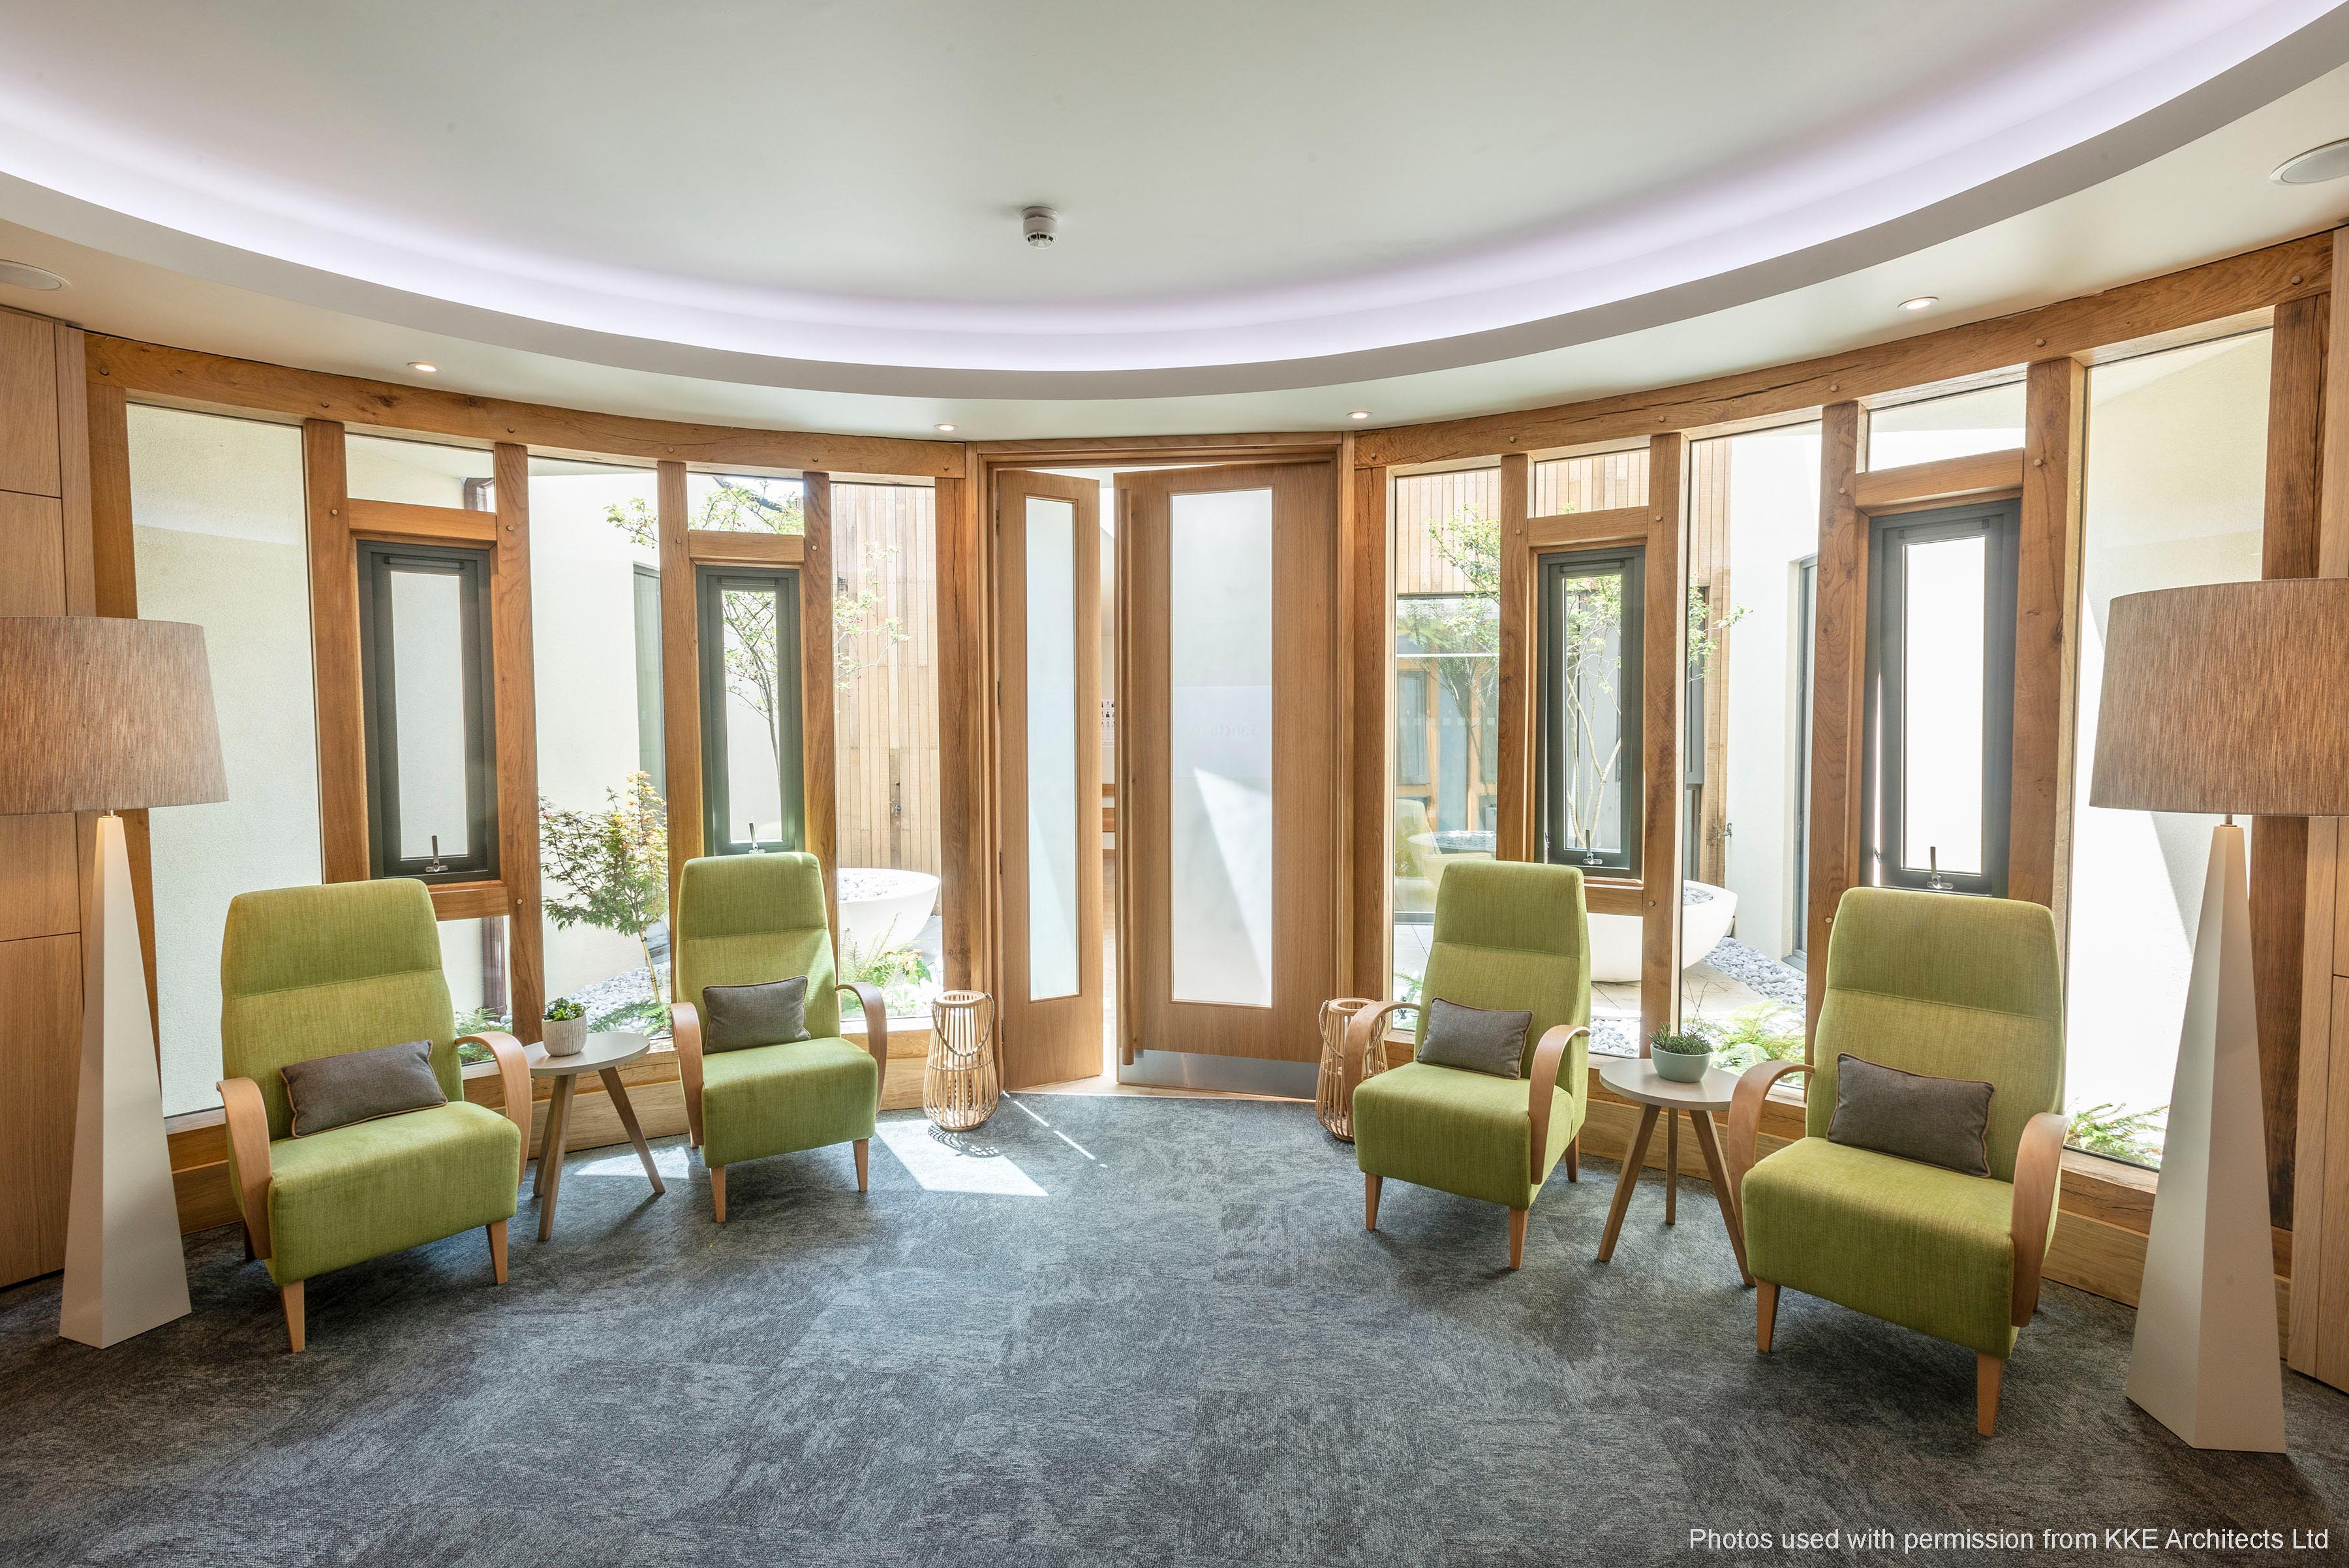 Some light green armchairs in a well-lit care home lounge.